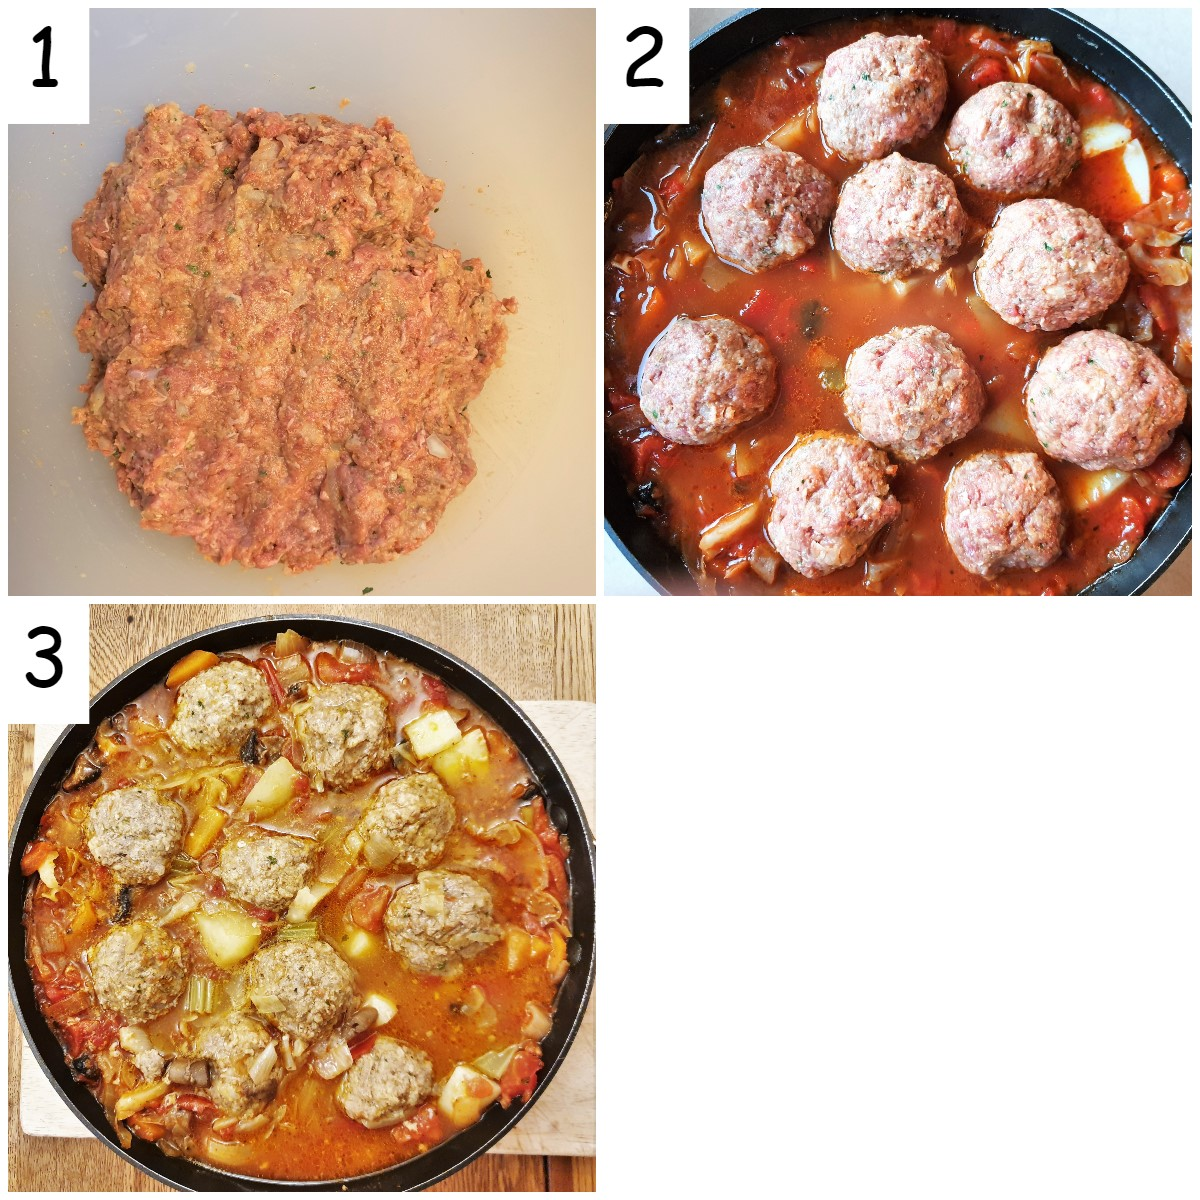 Steps for making the meatballs.